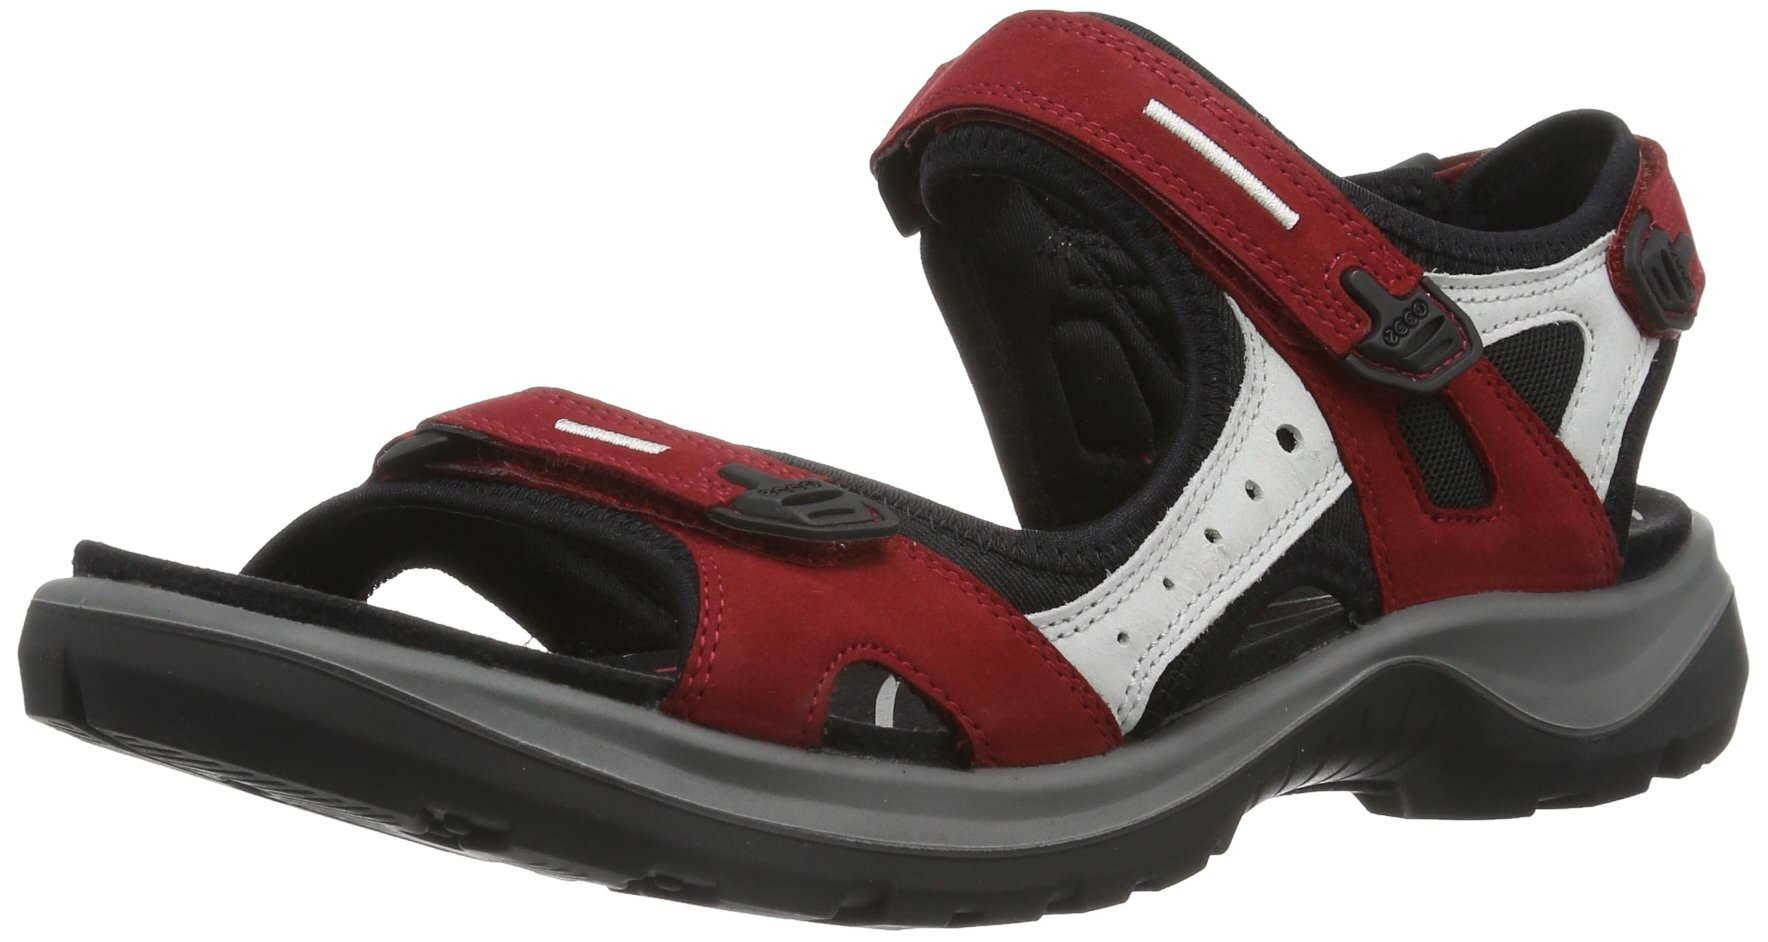 ECCO Women's Yucatan Athletic Sandal,Chili Red/Concrete/Black,39 EU (US Women's 8-8.5 M)